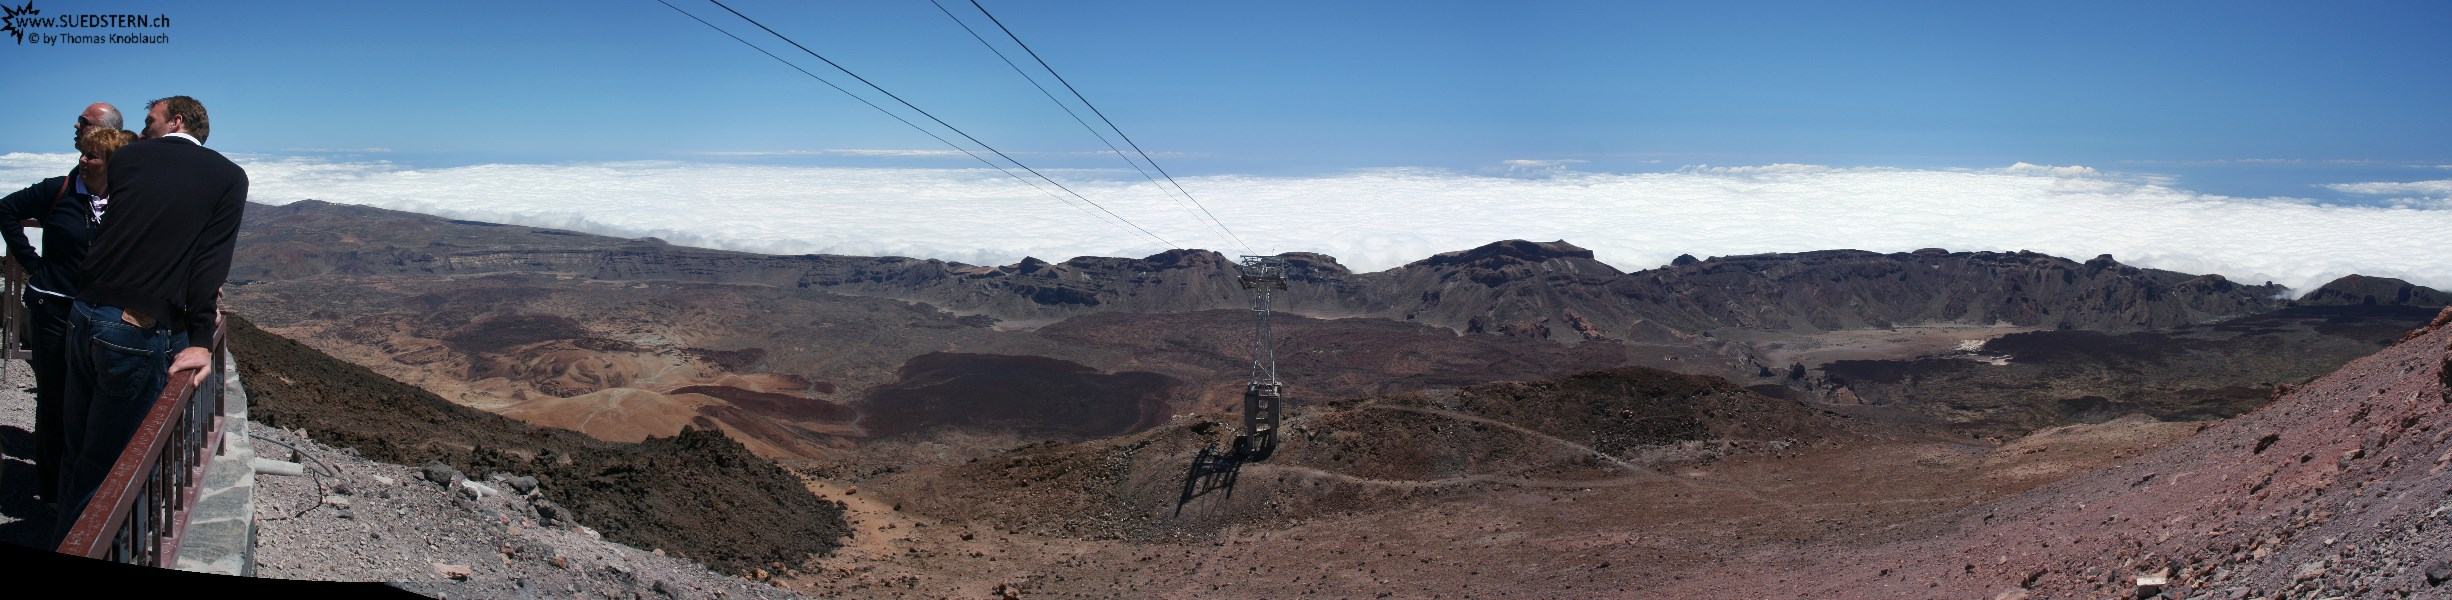 2007-09-06 - 10 - Teneriffa, panorama direction south from Teide mountain station altitude 3500m